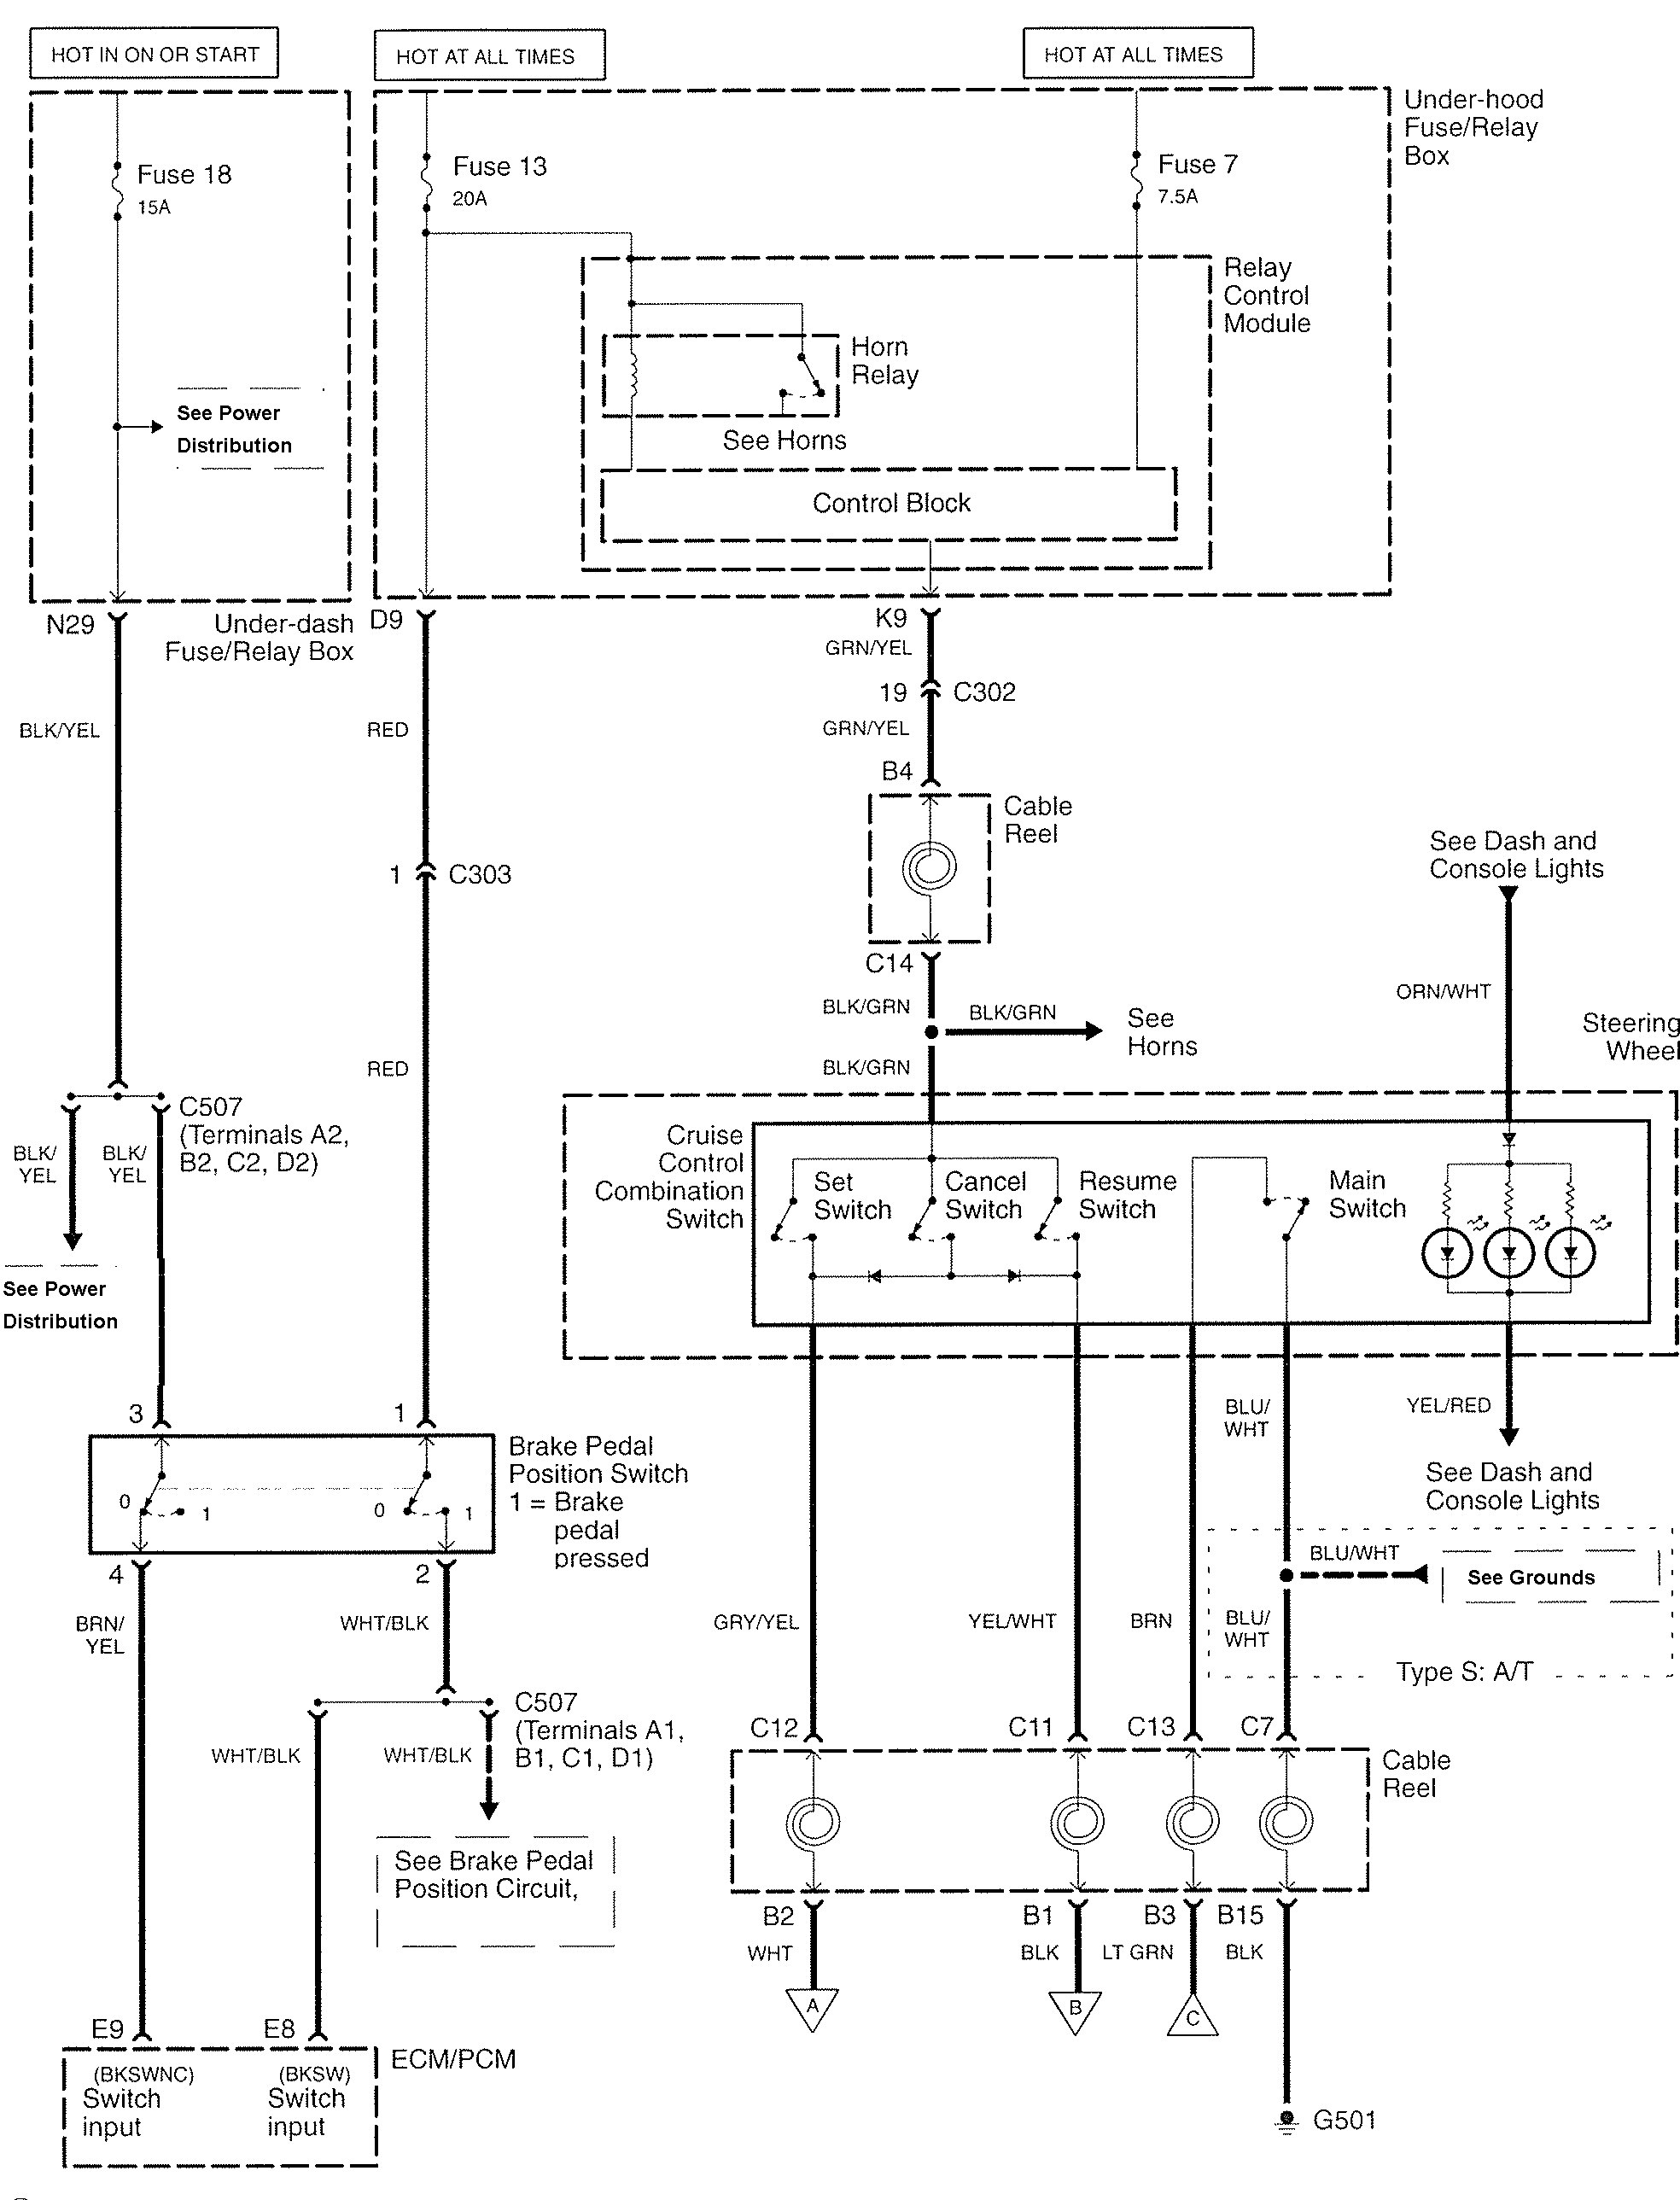 05 acura tl wiring diagram Images Gallery